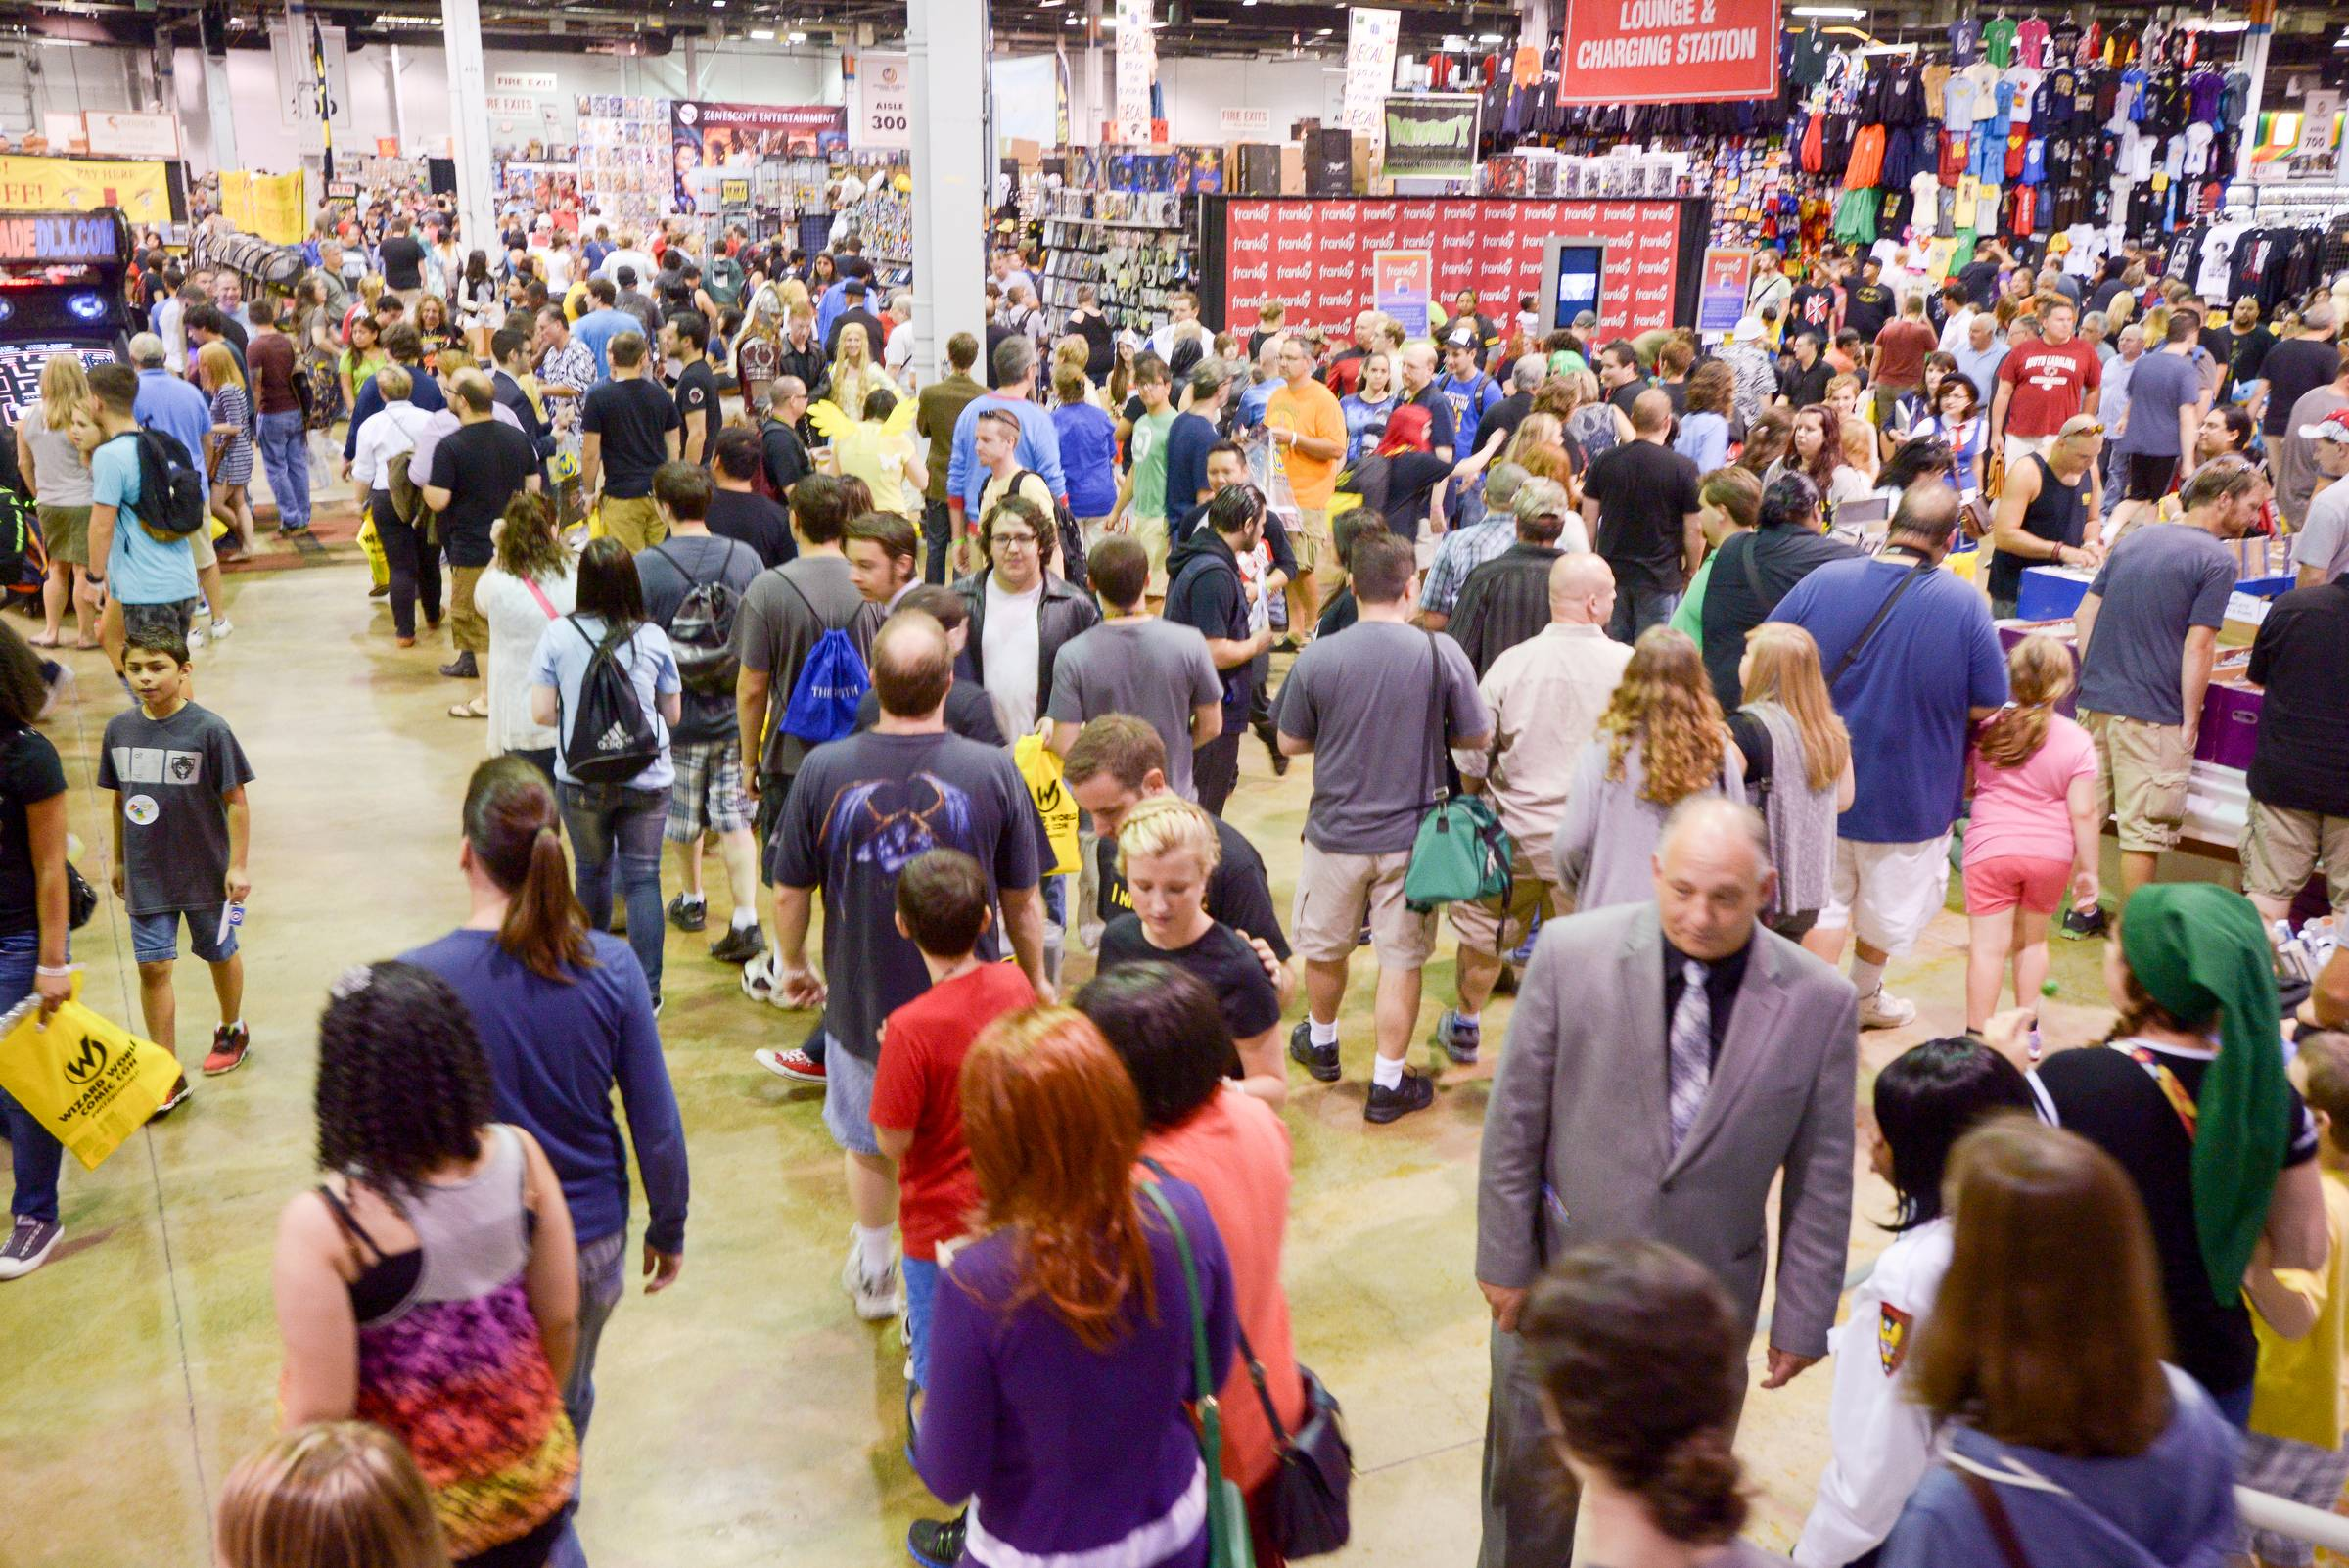 The Comic Con convention at the Donald E. Stephens Convention Center in Rosemont drew massive crowds.